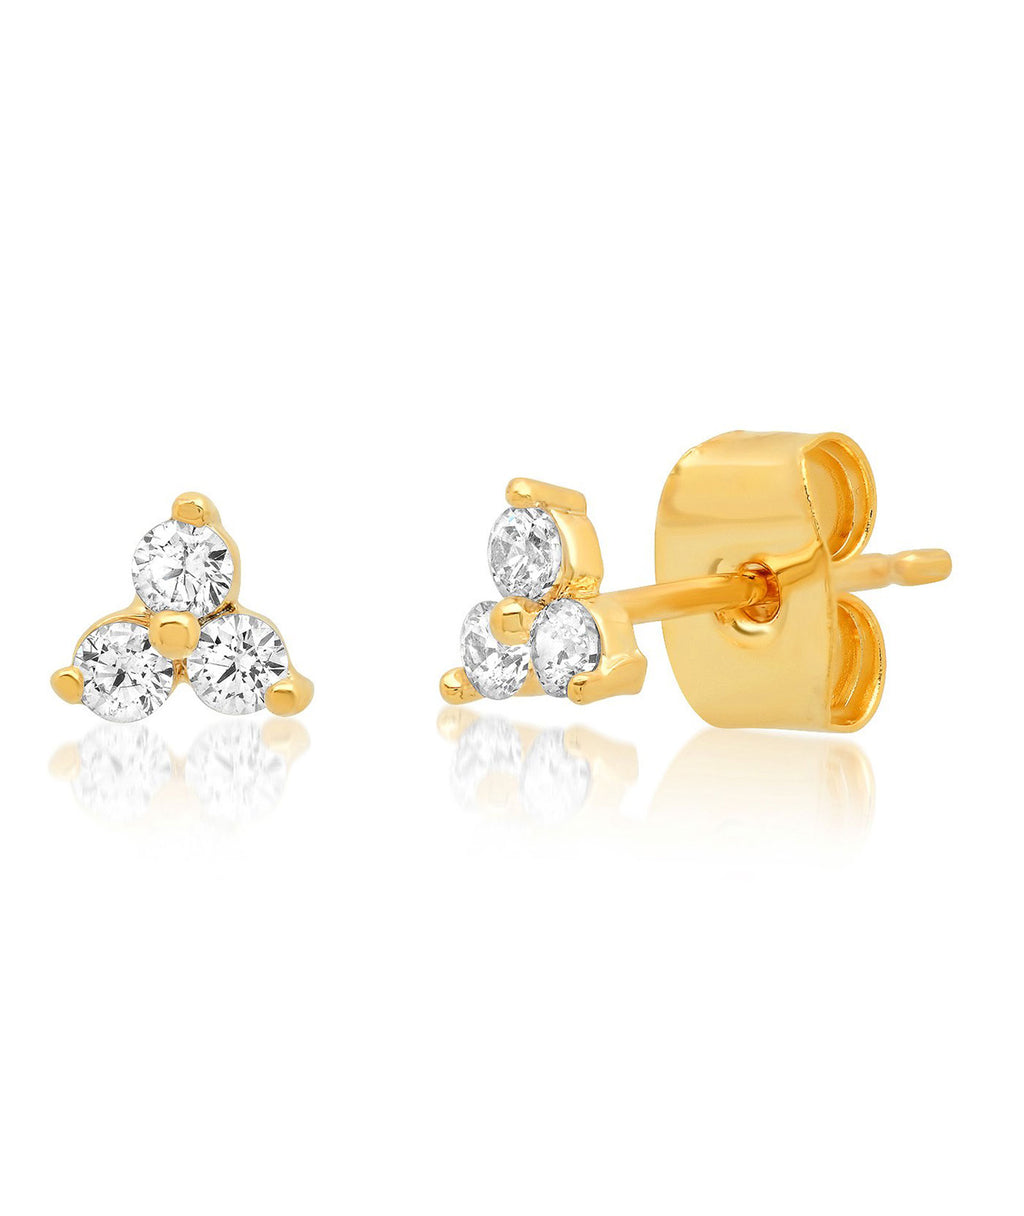 TAI Gold Cluster Stud Earrings